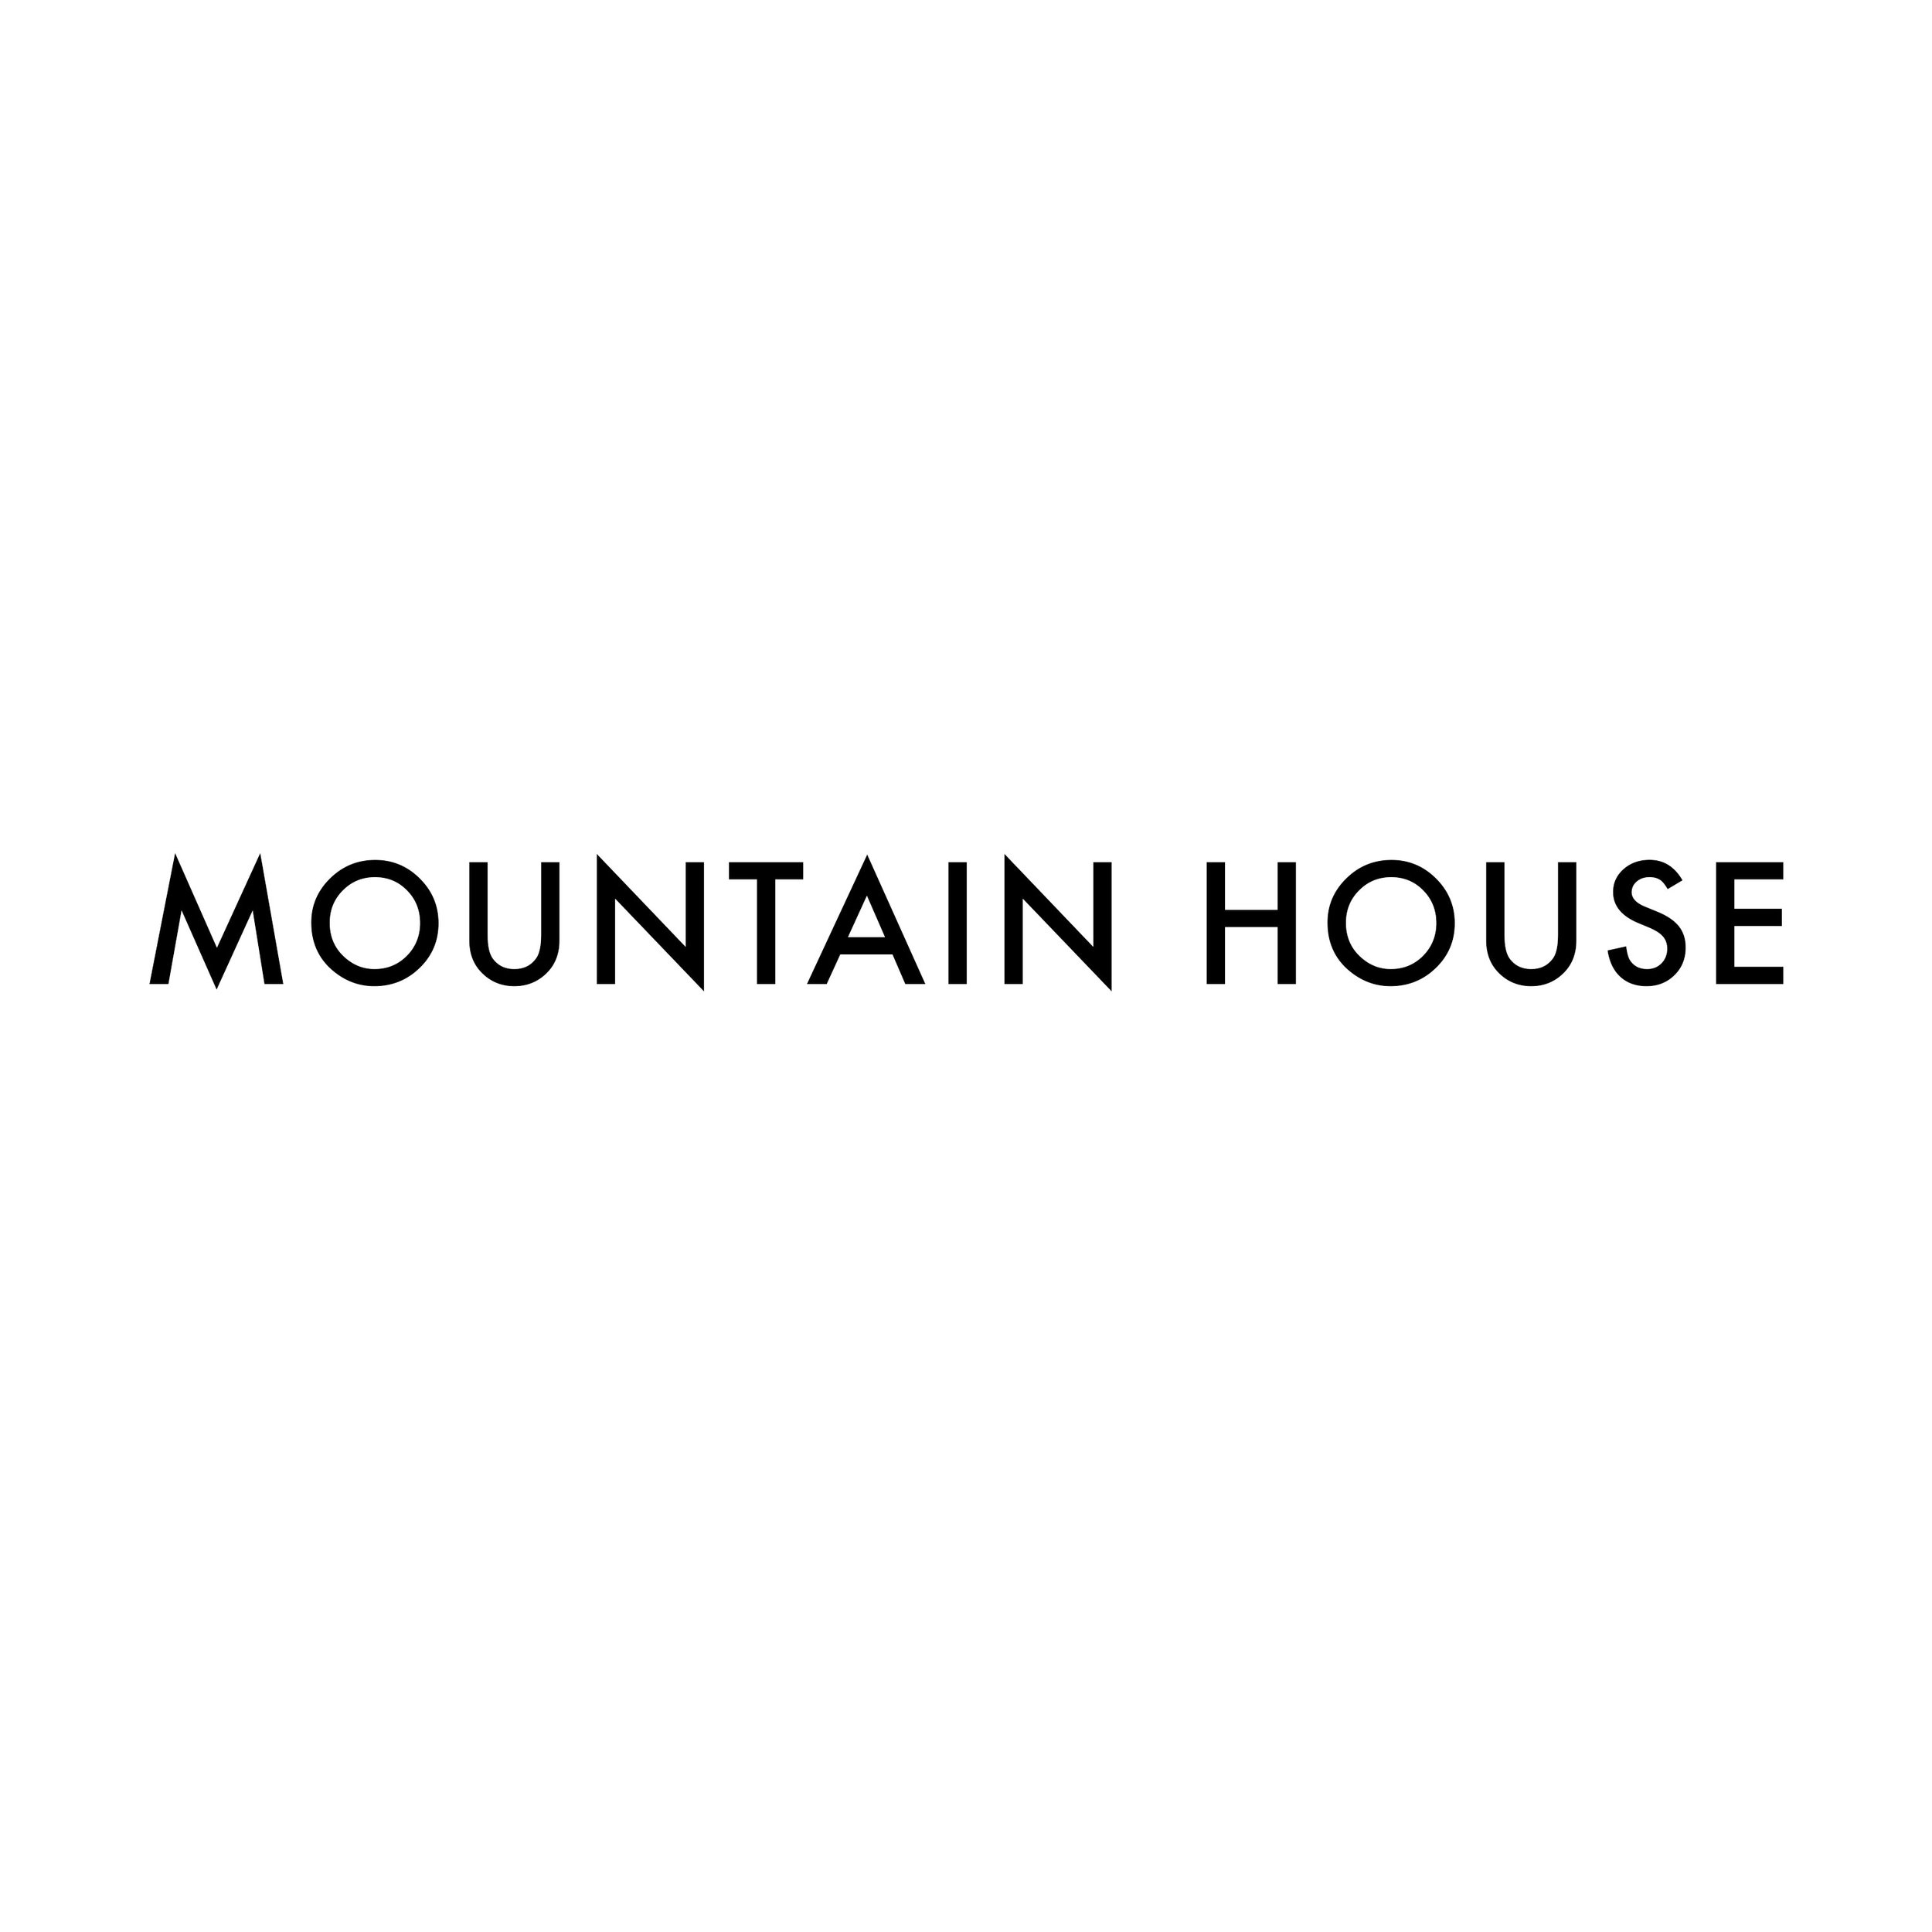 mountainhouse.jpg